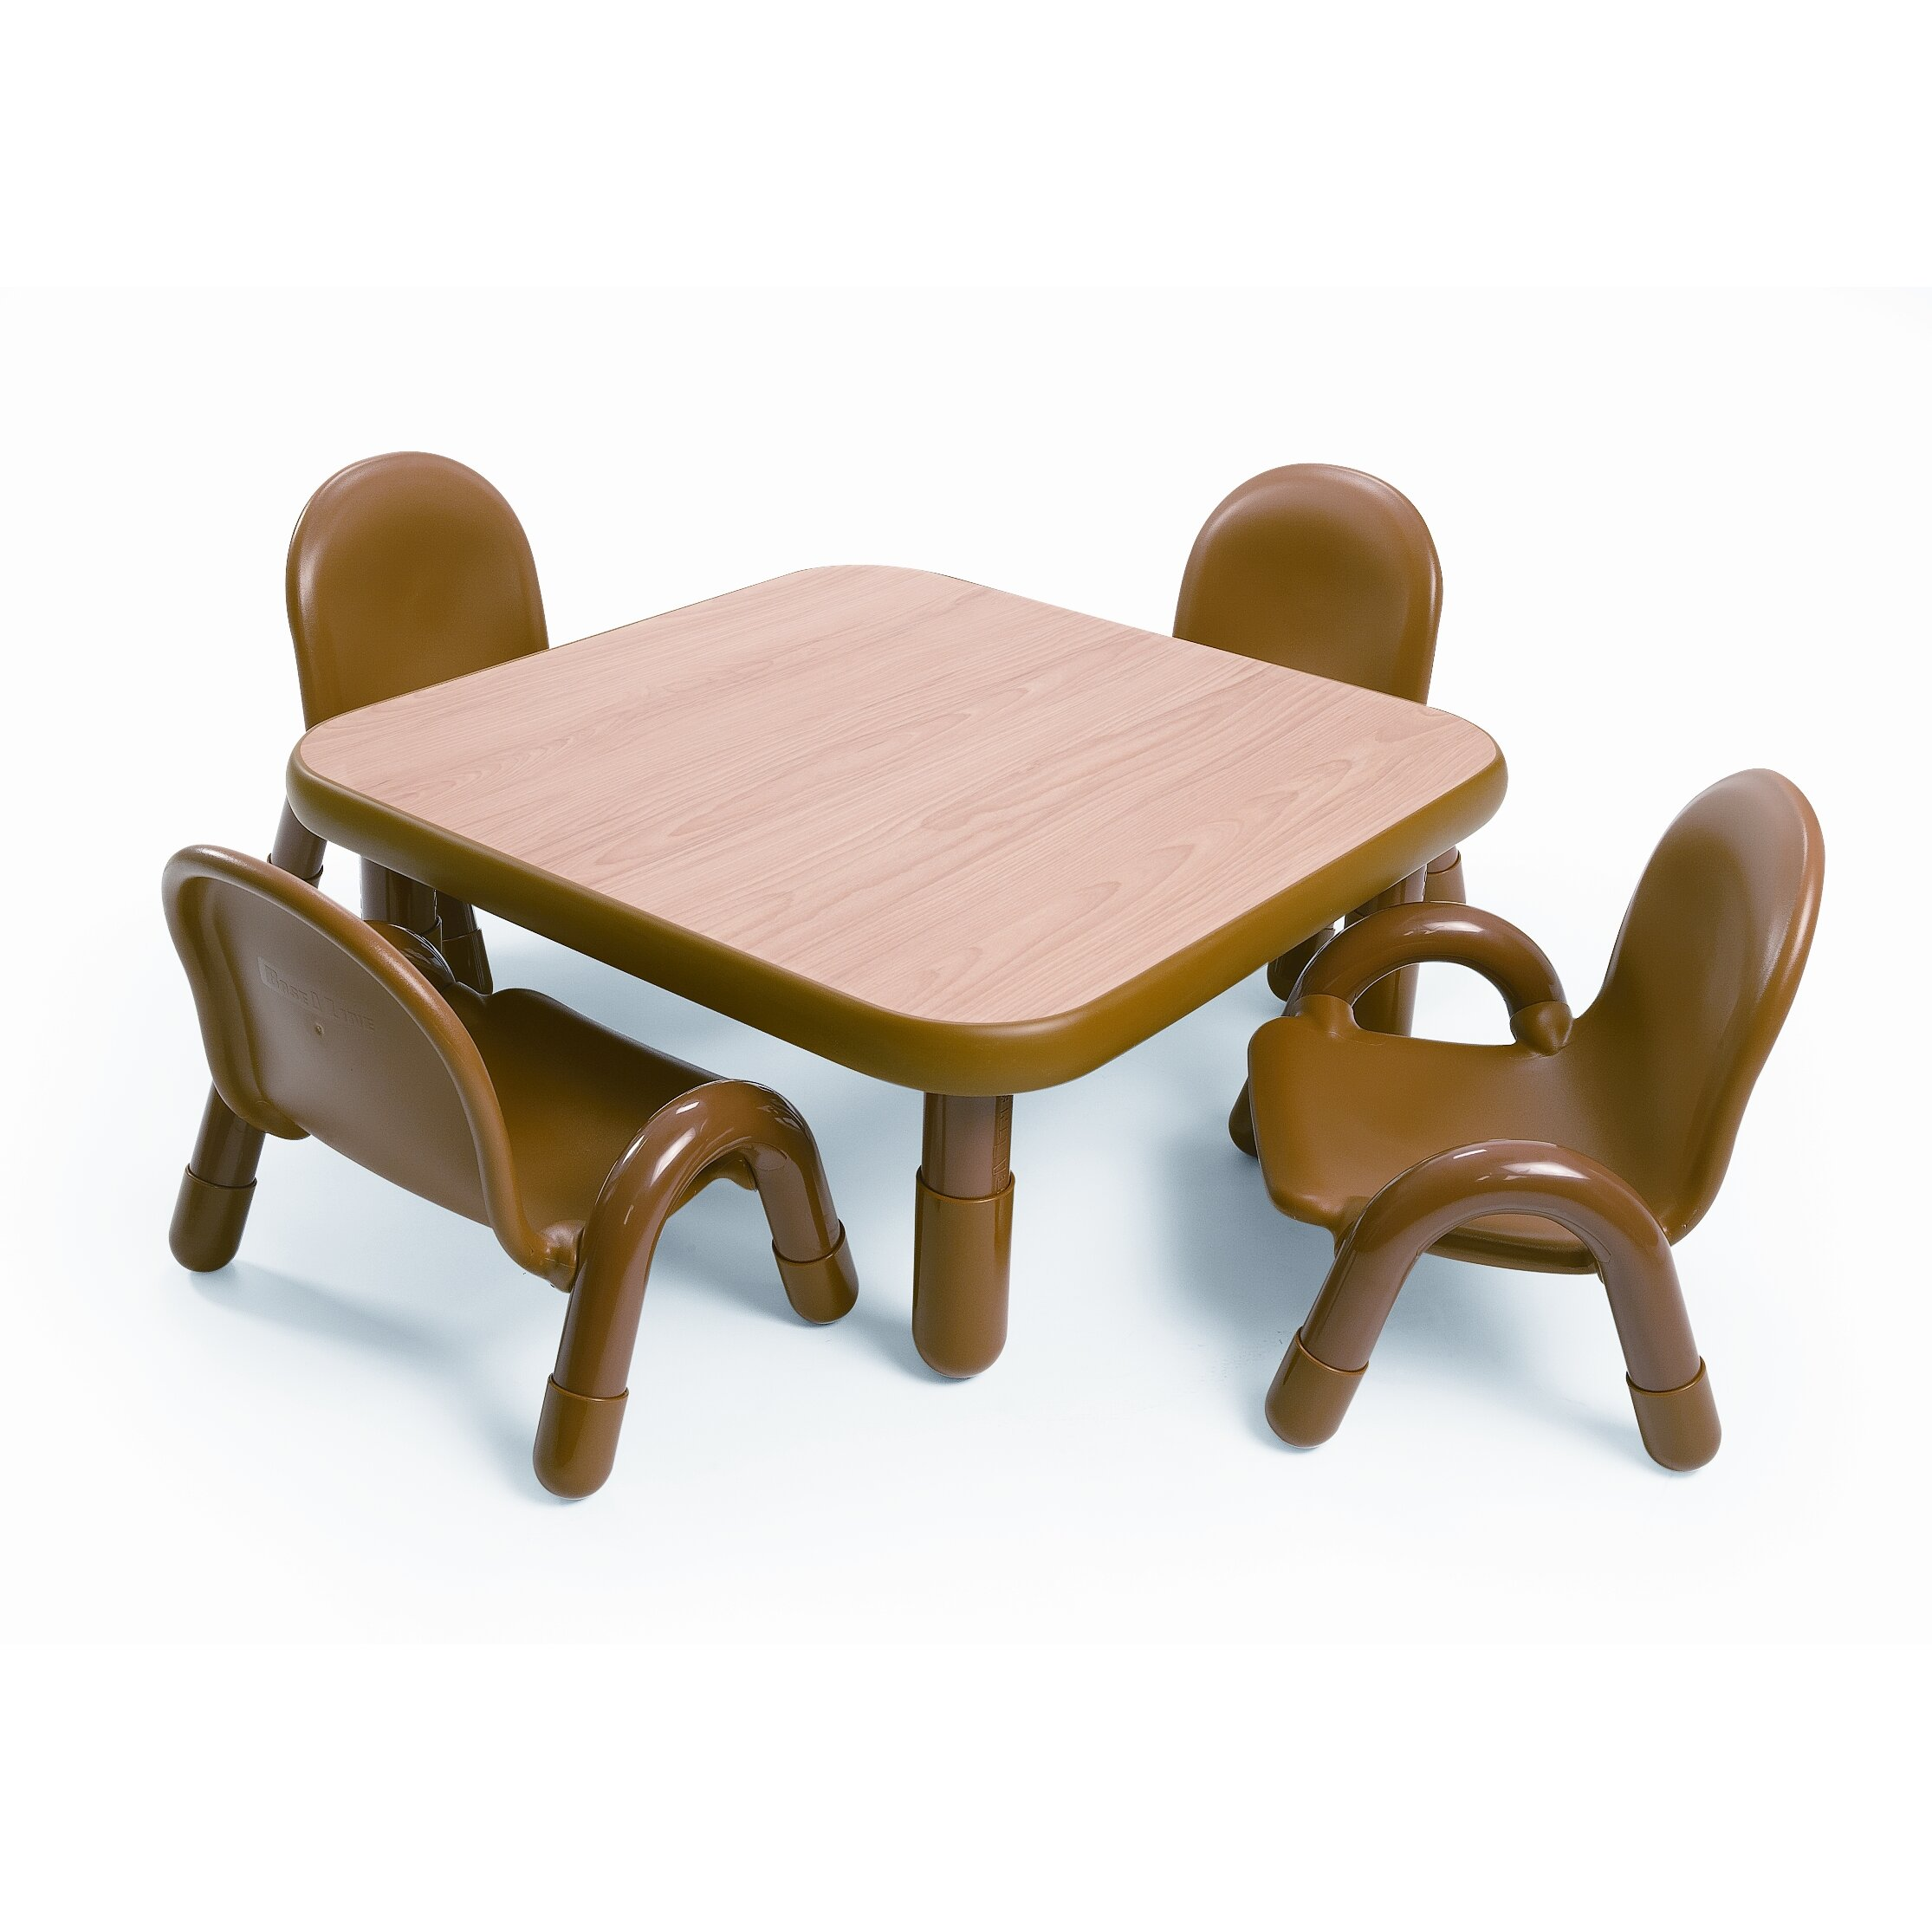 Best toddler table and chairs - Square Baseline Toddler Table And Chair Set In Natural